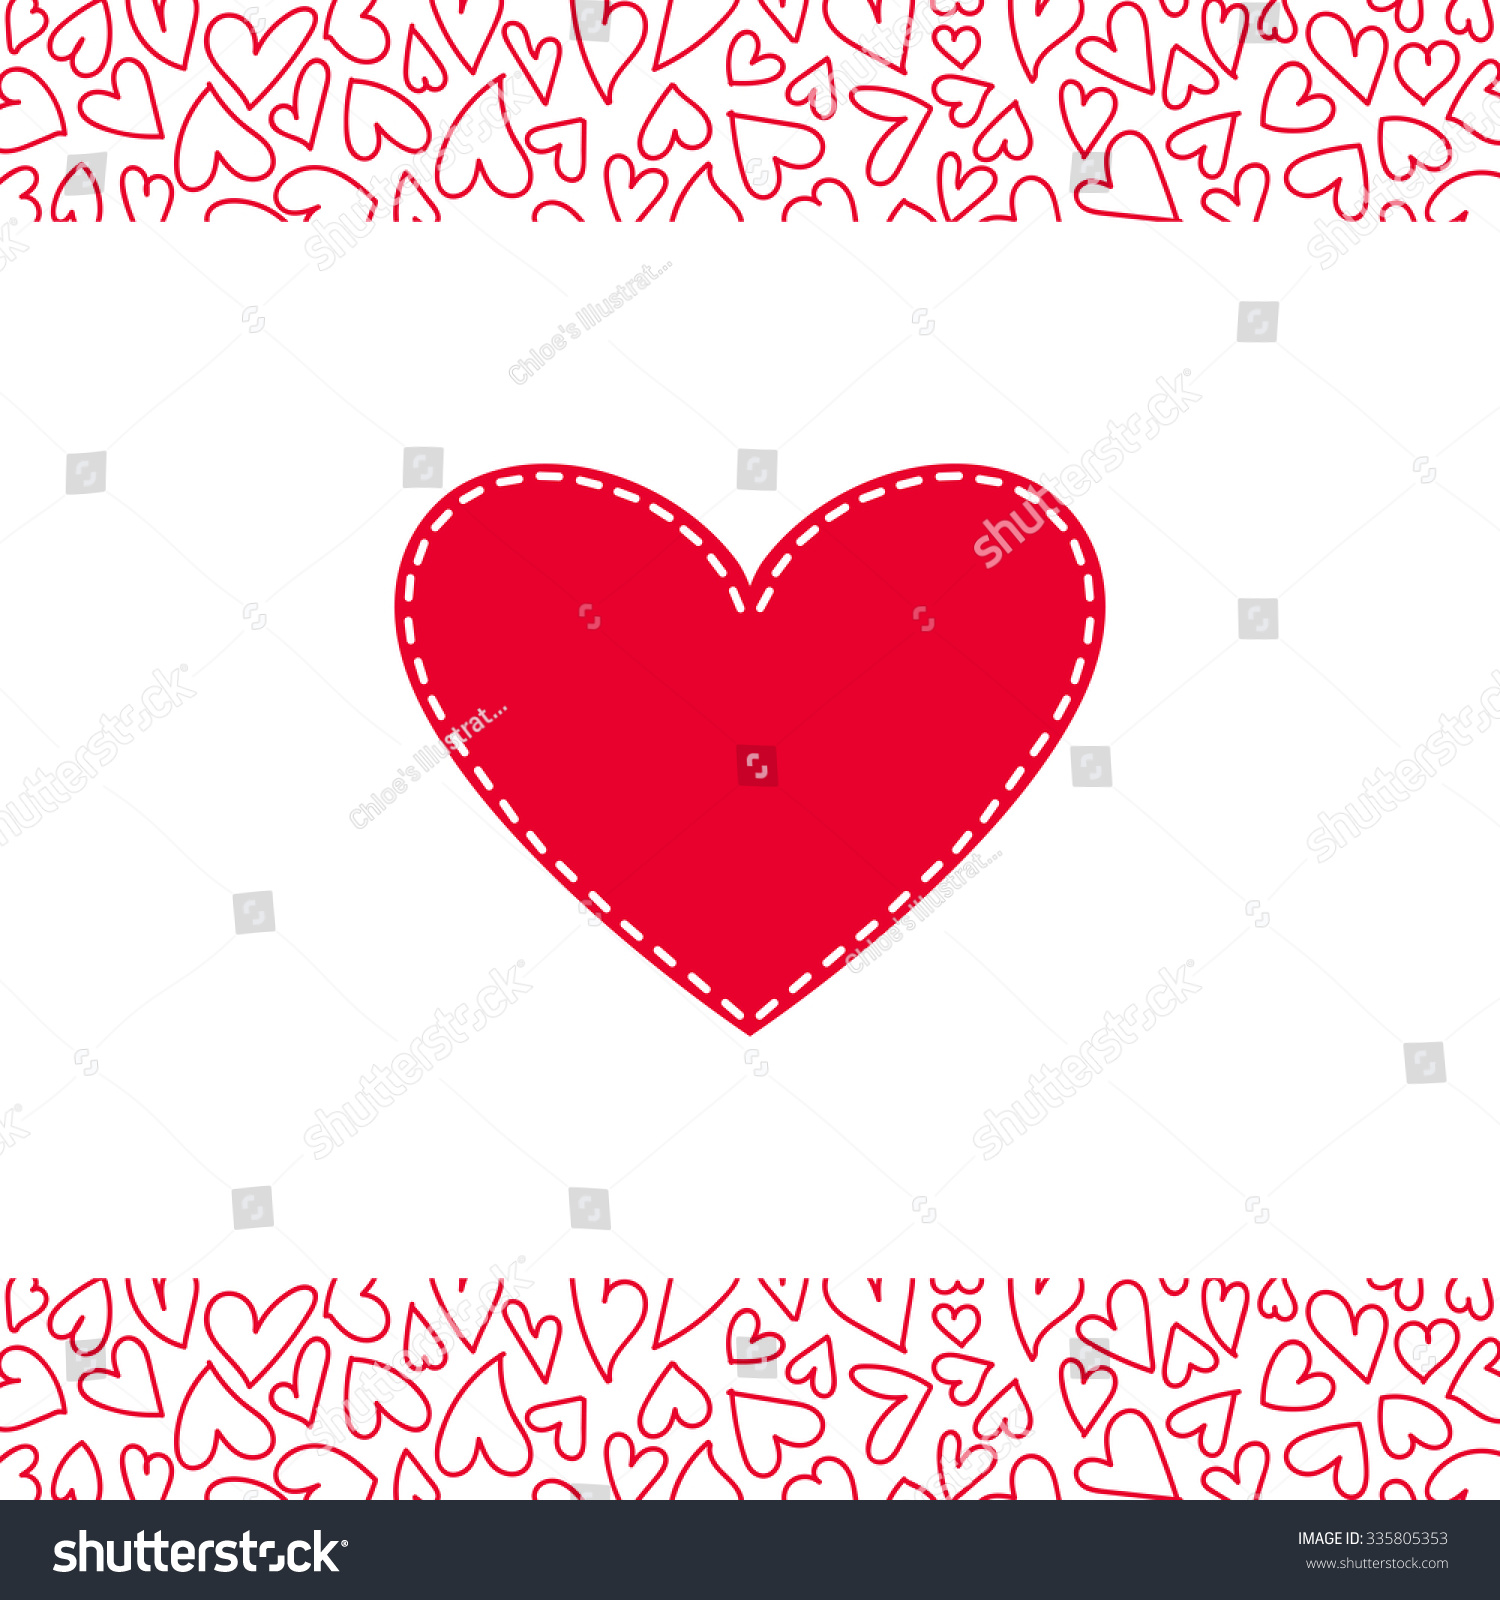 stock-vector-romantic-red-and-white-gree